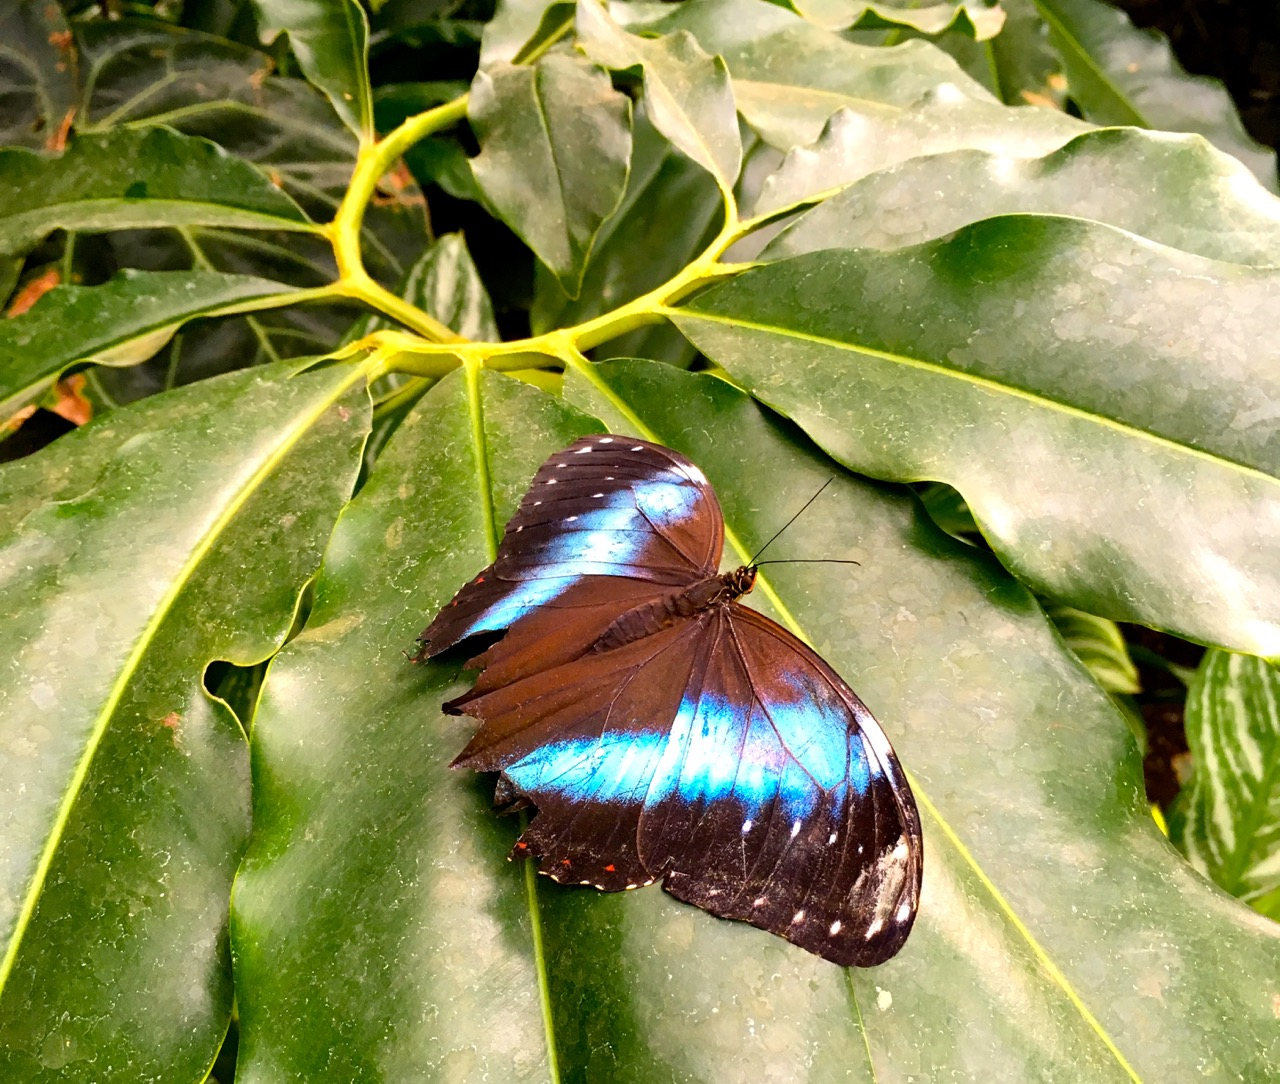 A hint of blue on the wings of this butterfly in the glasshouse at RHS Wisley